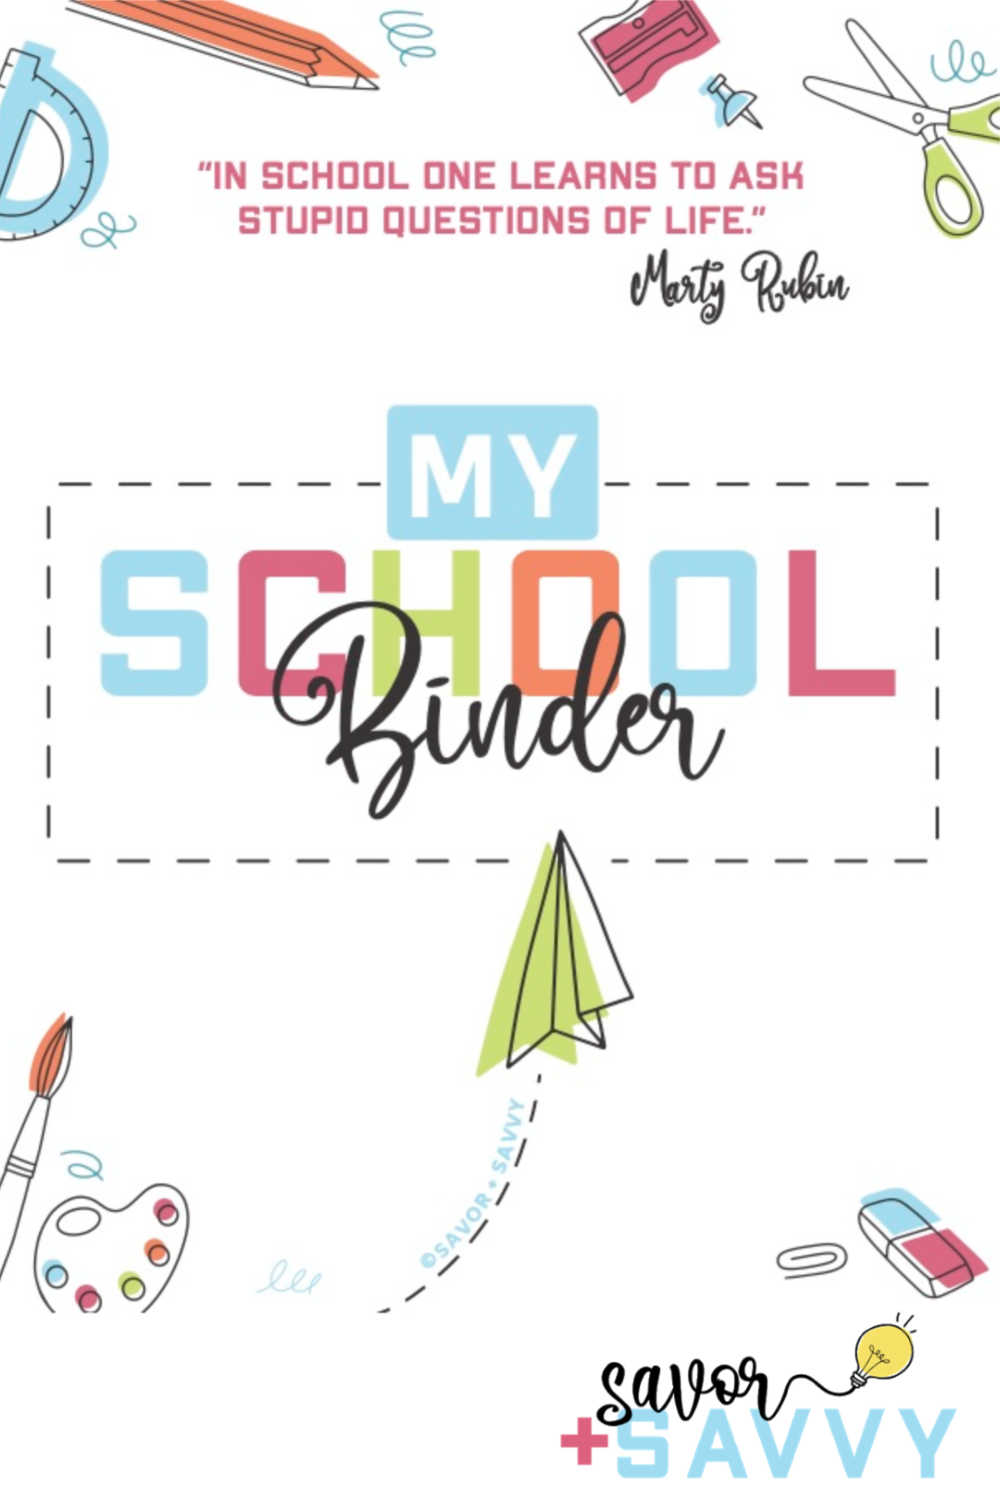 cover sheet of the student and school binder